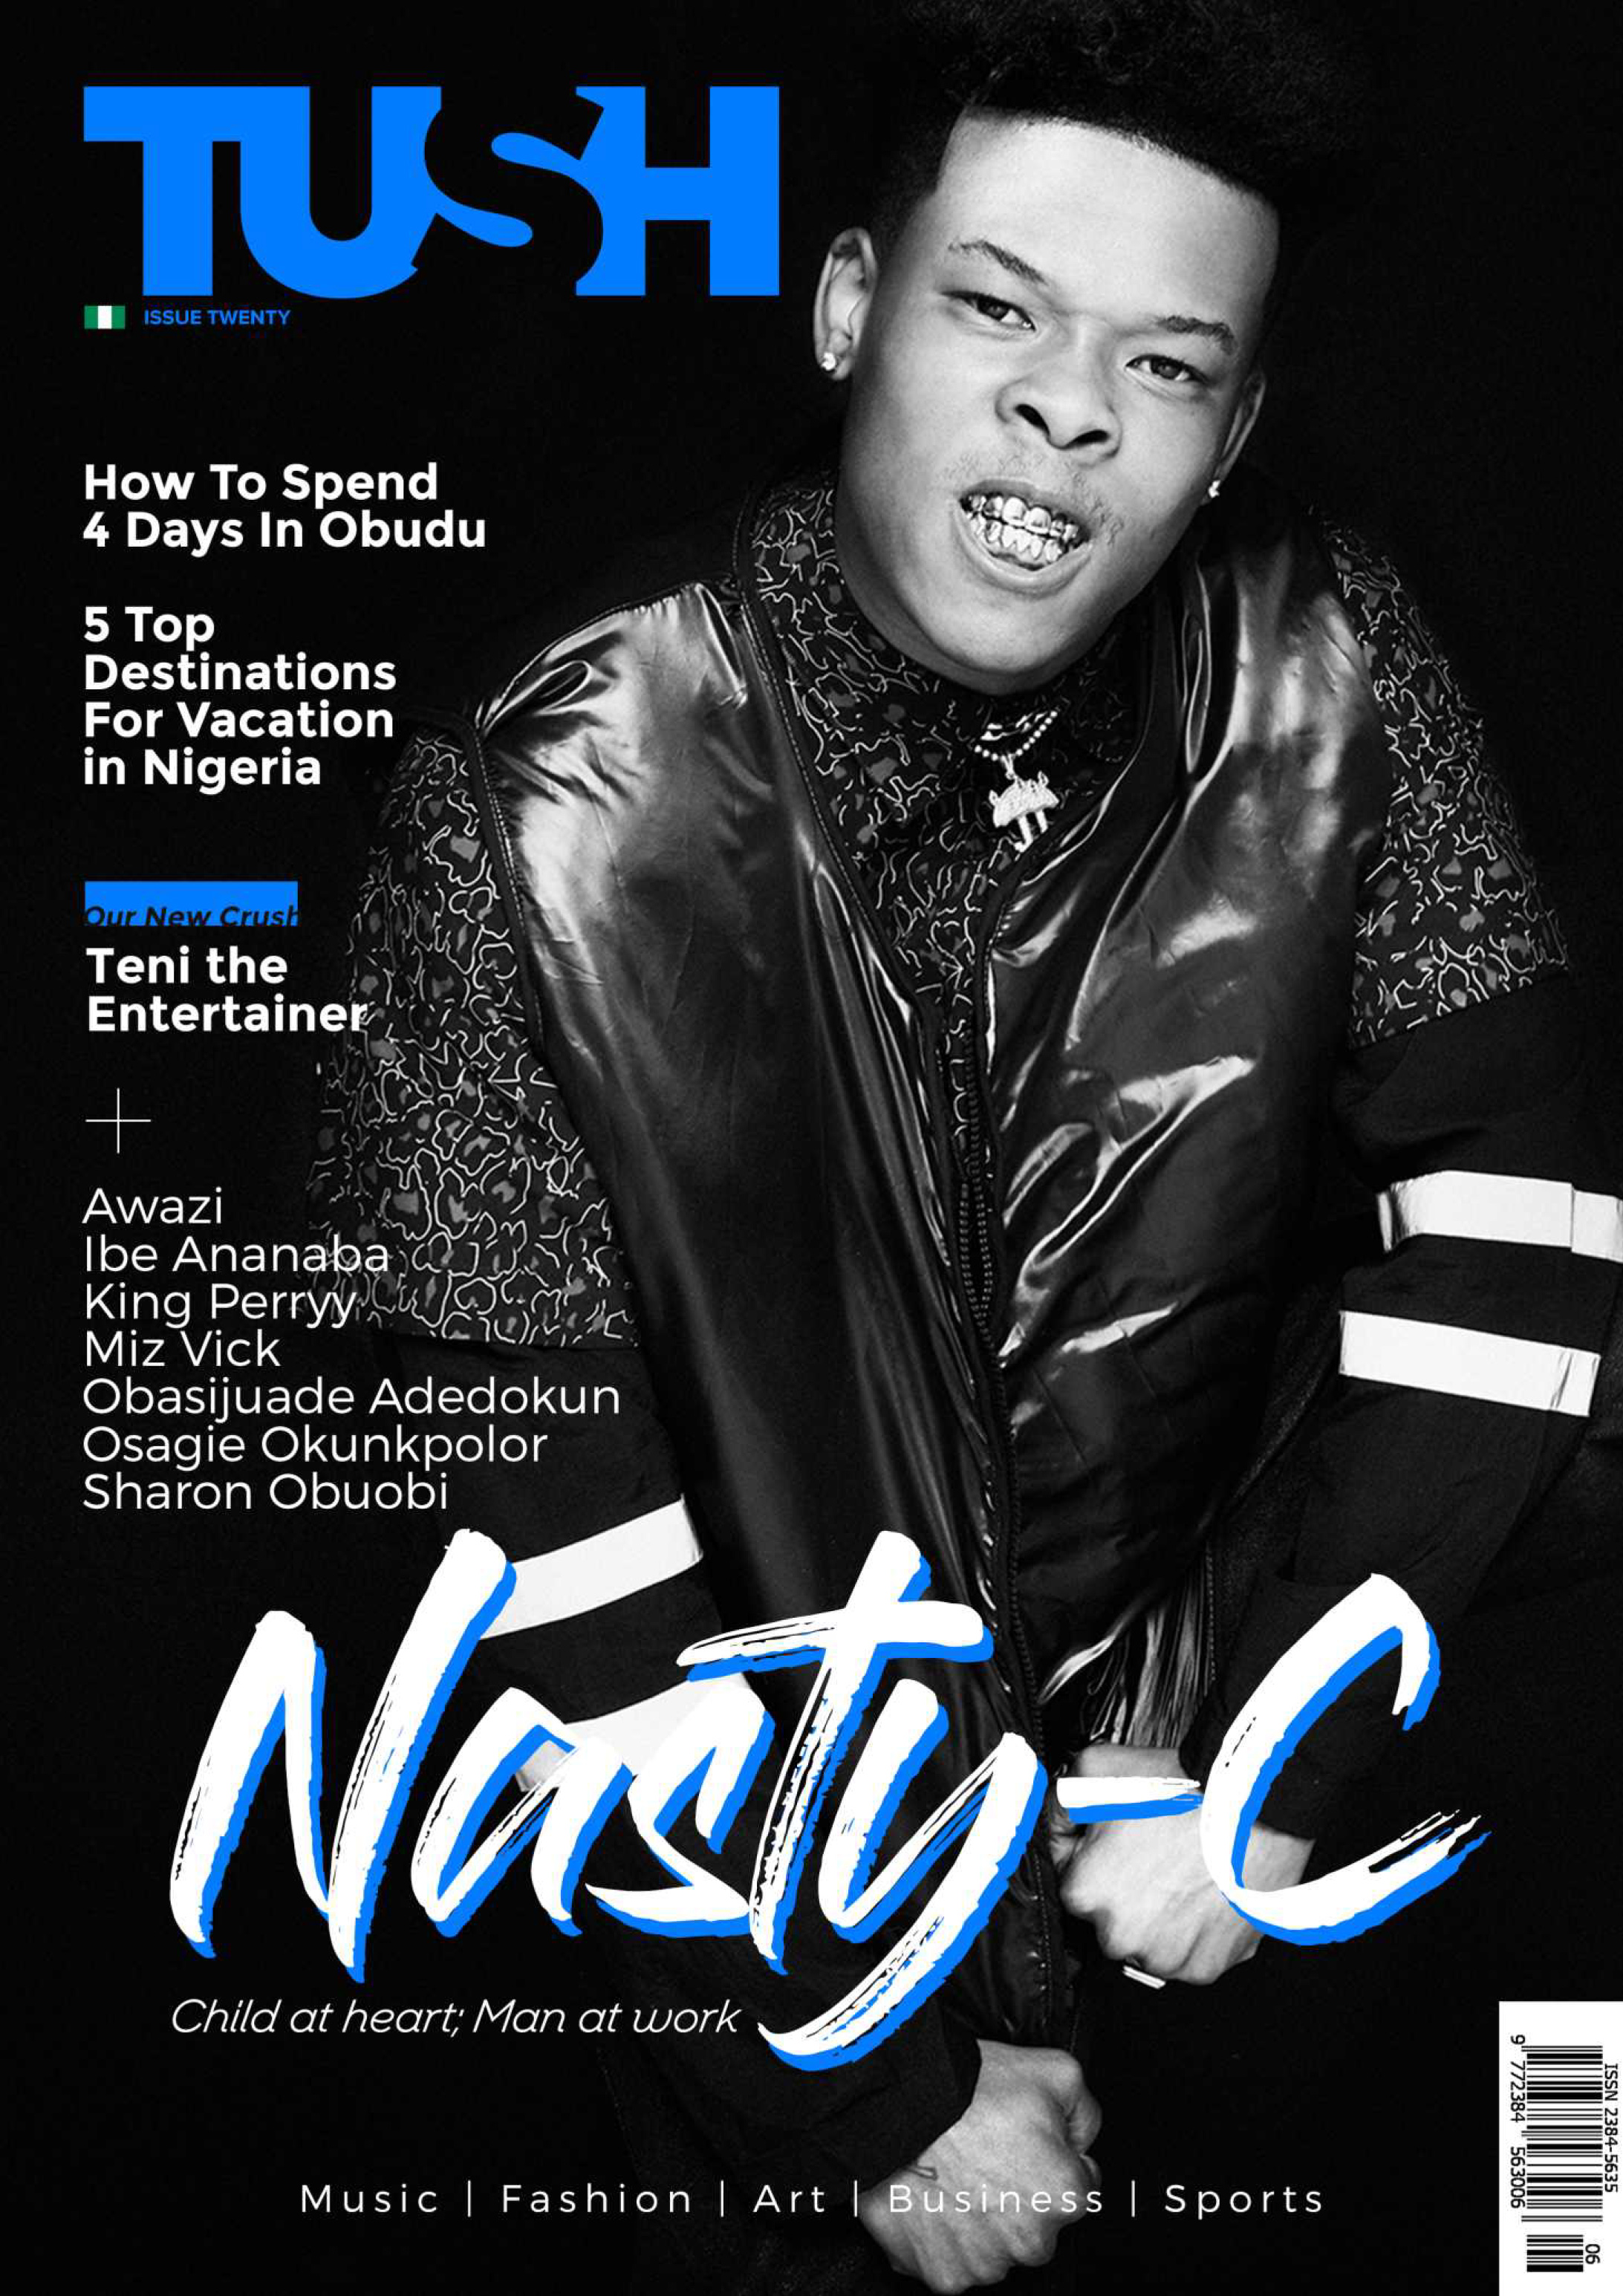 Nasty C, The Prince of African Hip-Hop Covers Tush Magazine Issue 20 As We Clock 6 Years